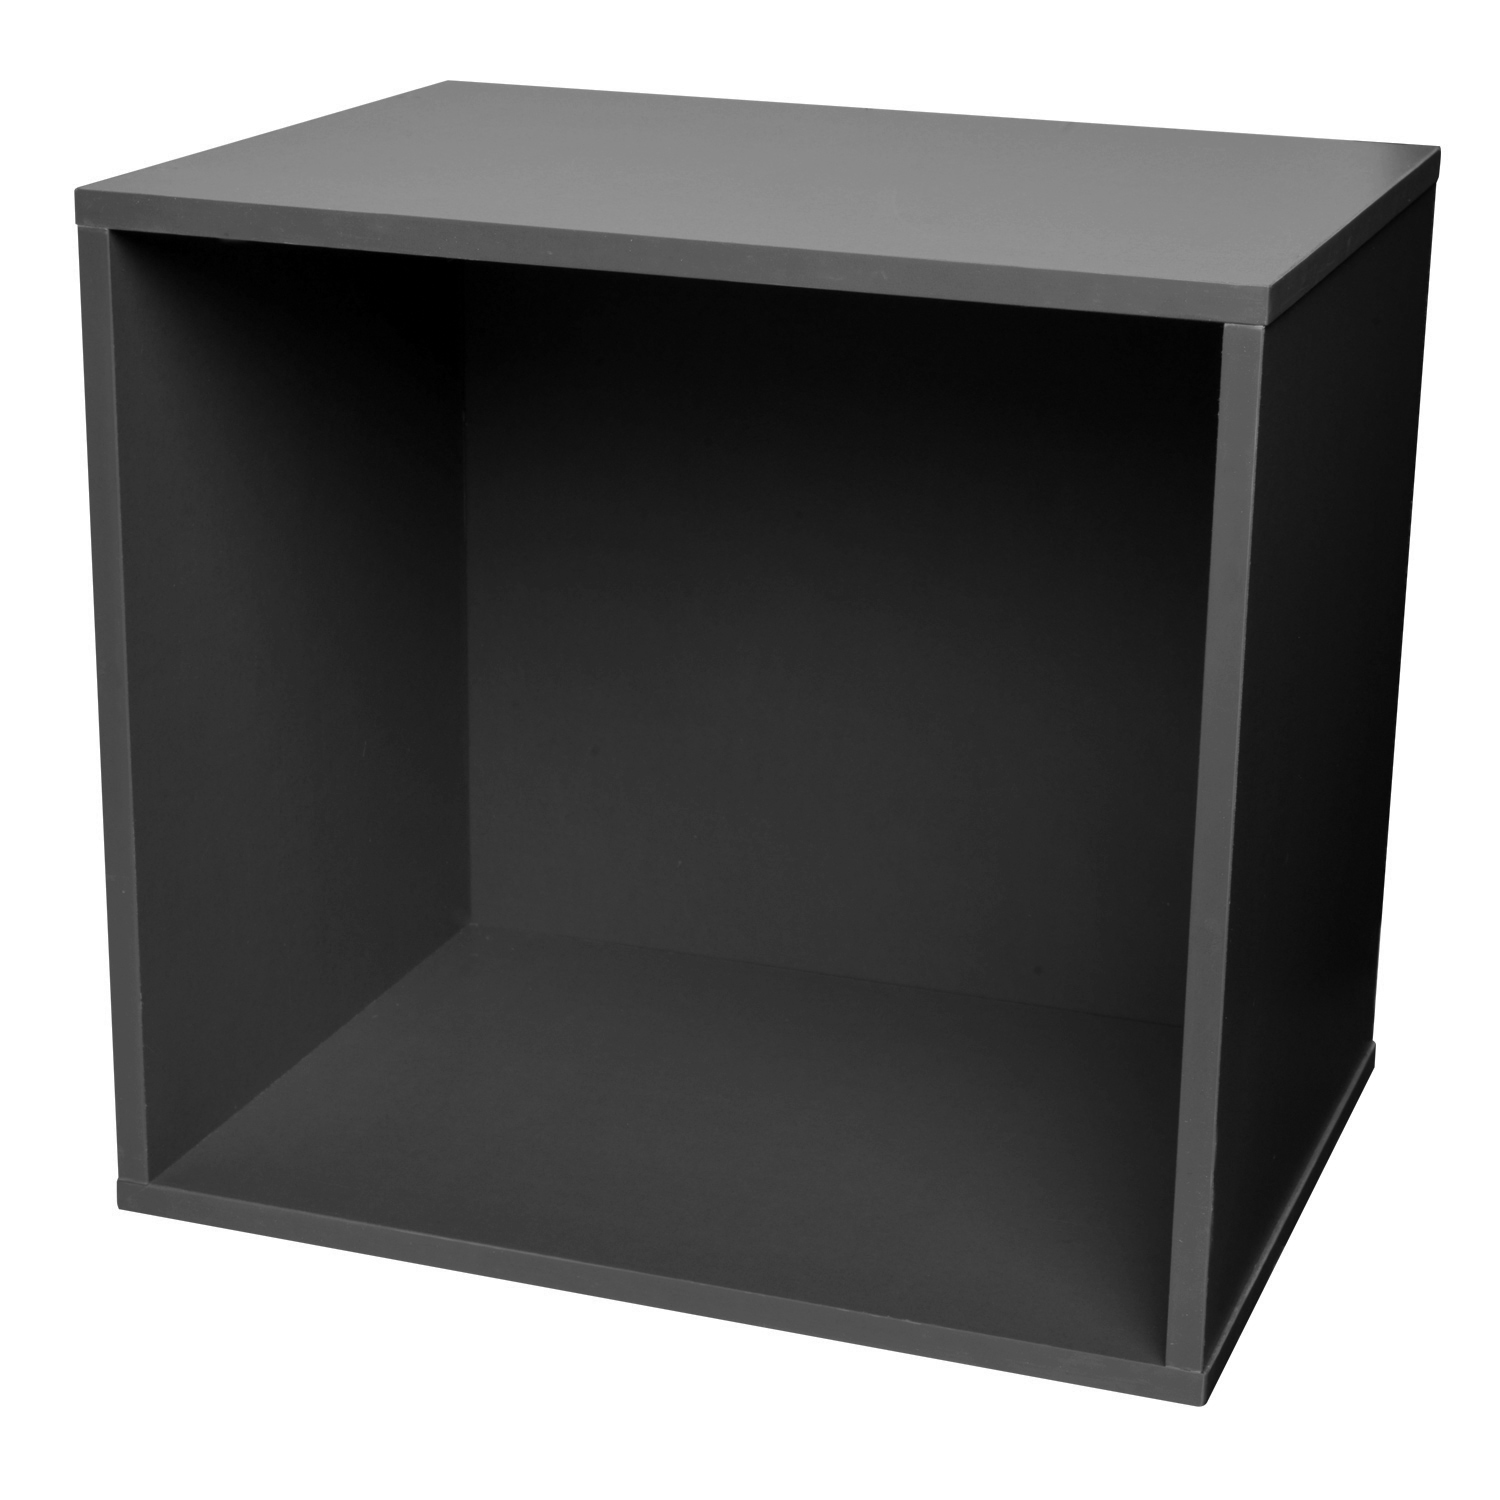 cube it regal regal cube 3er d nisches bettenlager regal cube kiefer 1er d nisches bettenlager. Black Bedroom Furniture Sets. Home Design Ideas